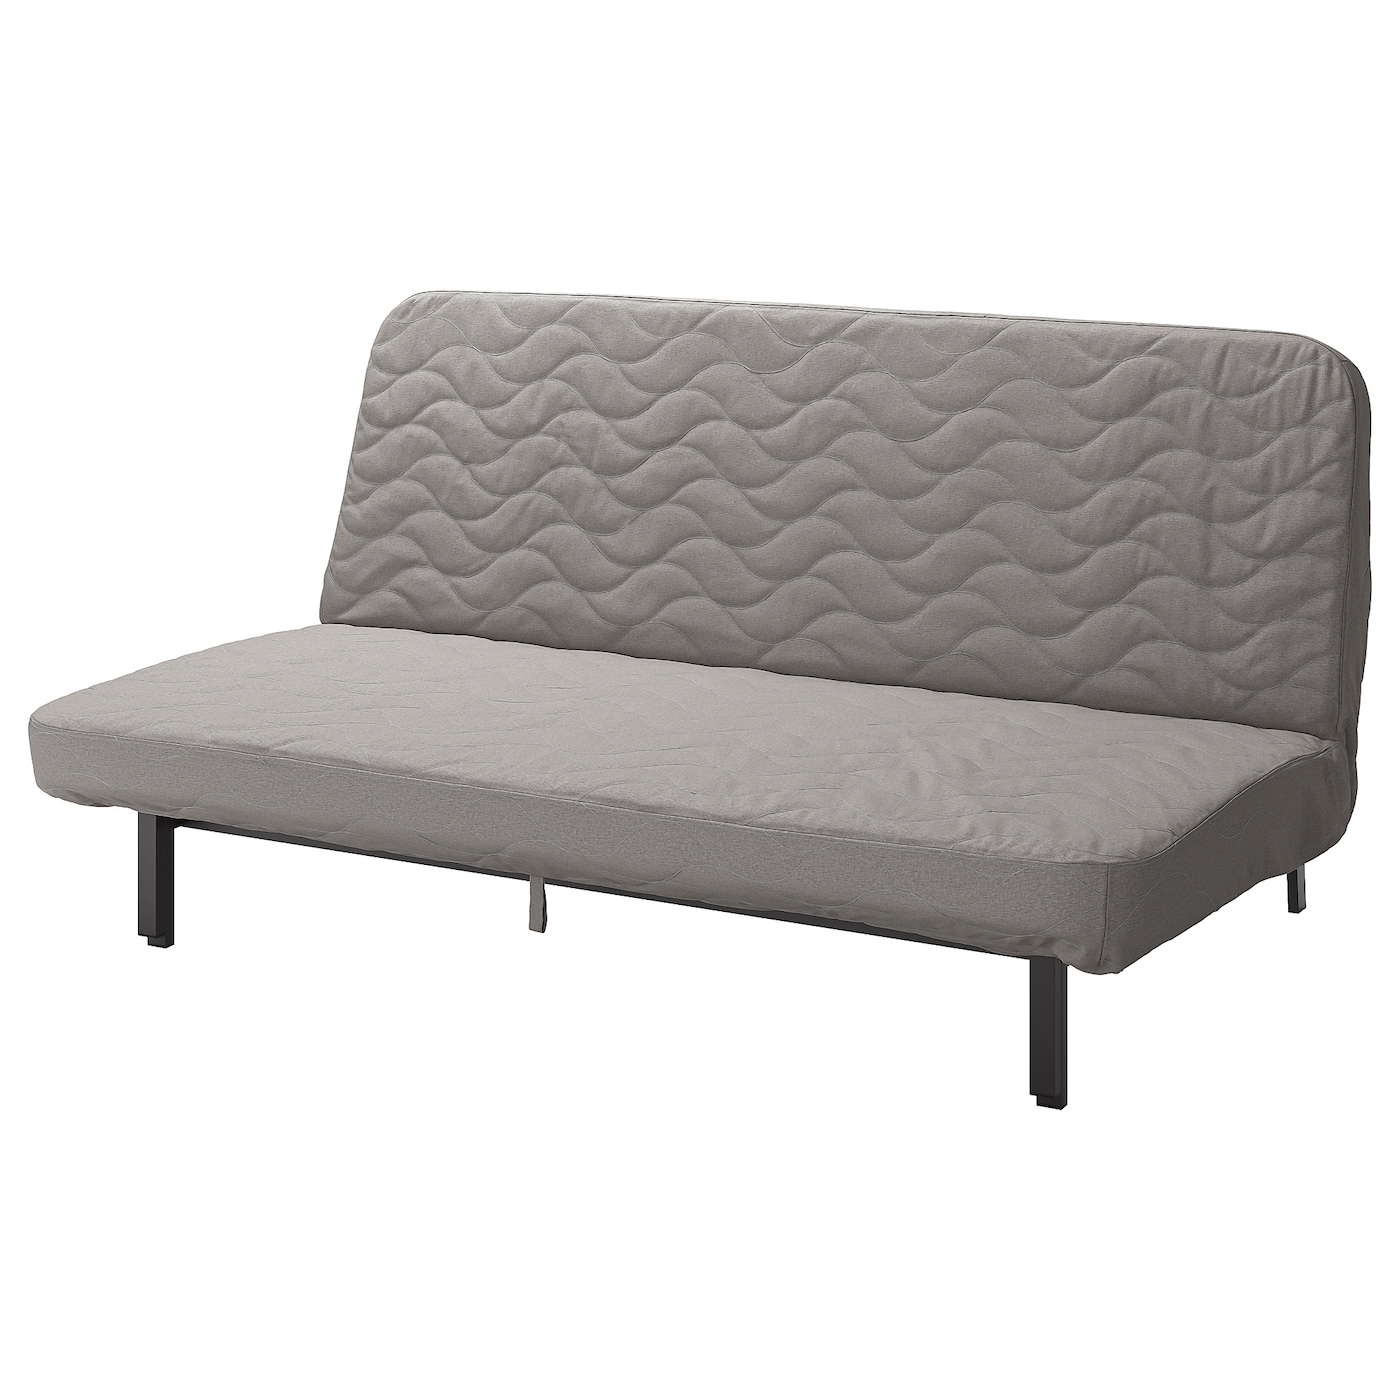 Nyhamn 3 Seat Sofa Bed With Pocket